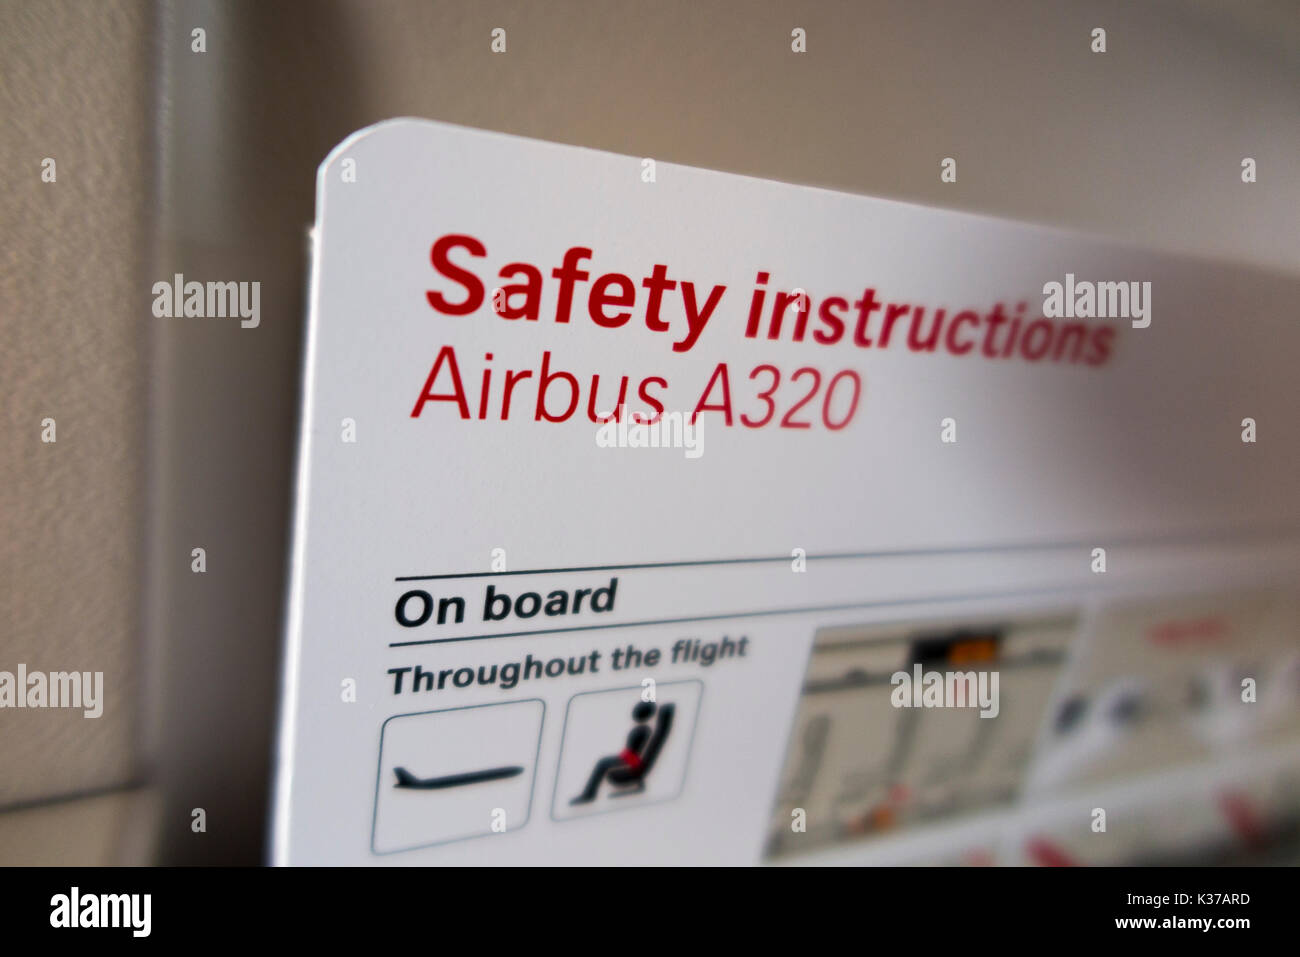 Aircraft Safety And Emergency Information Instruction Guide Card